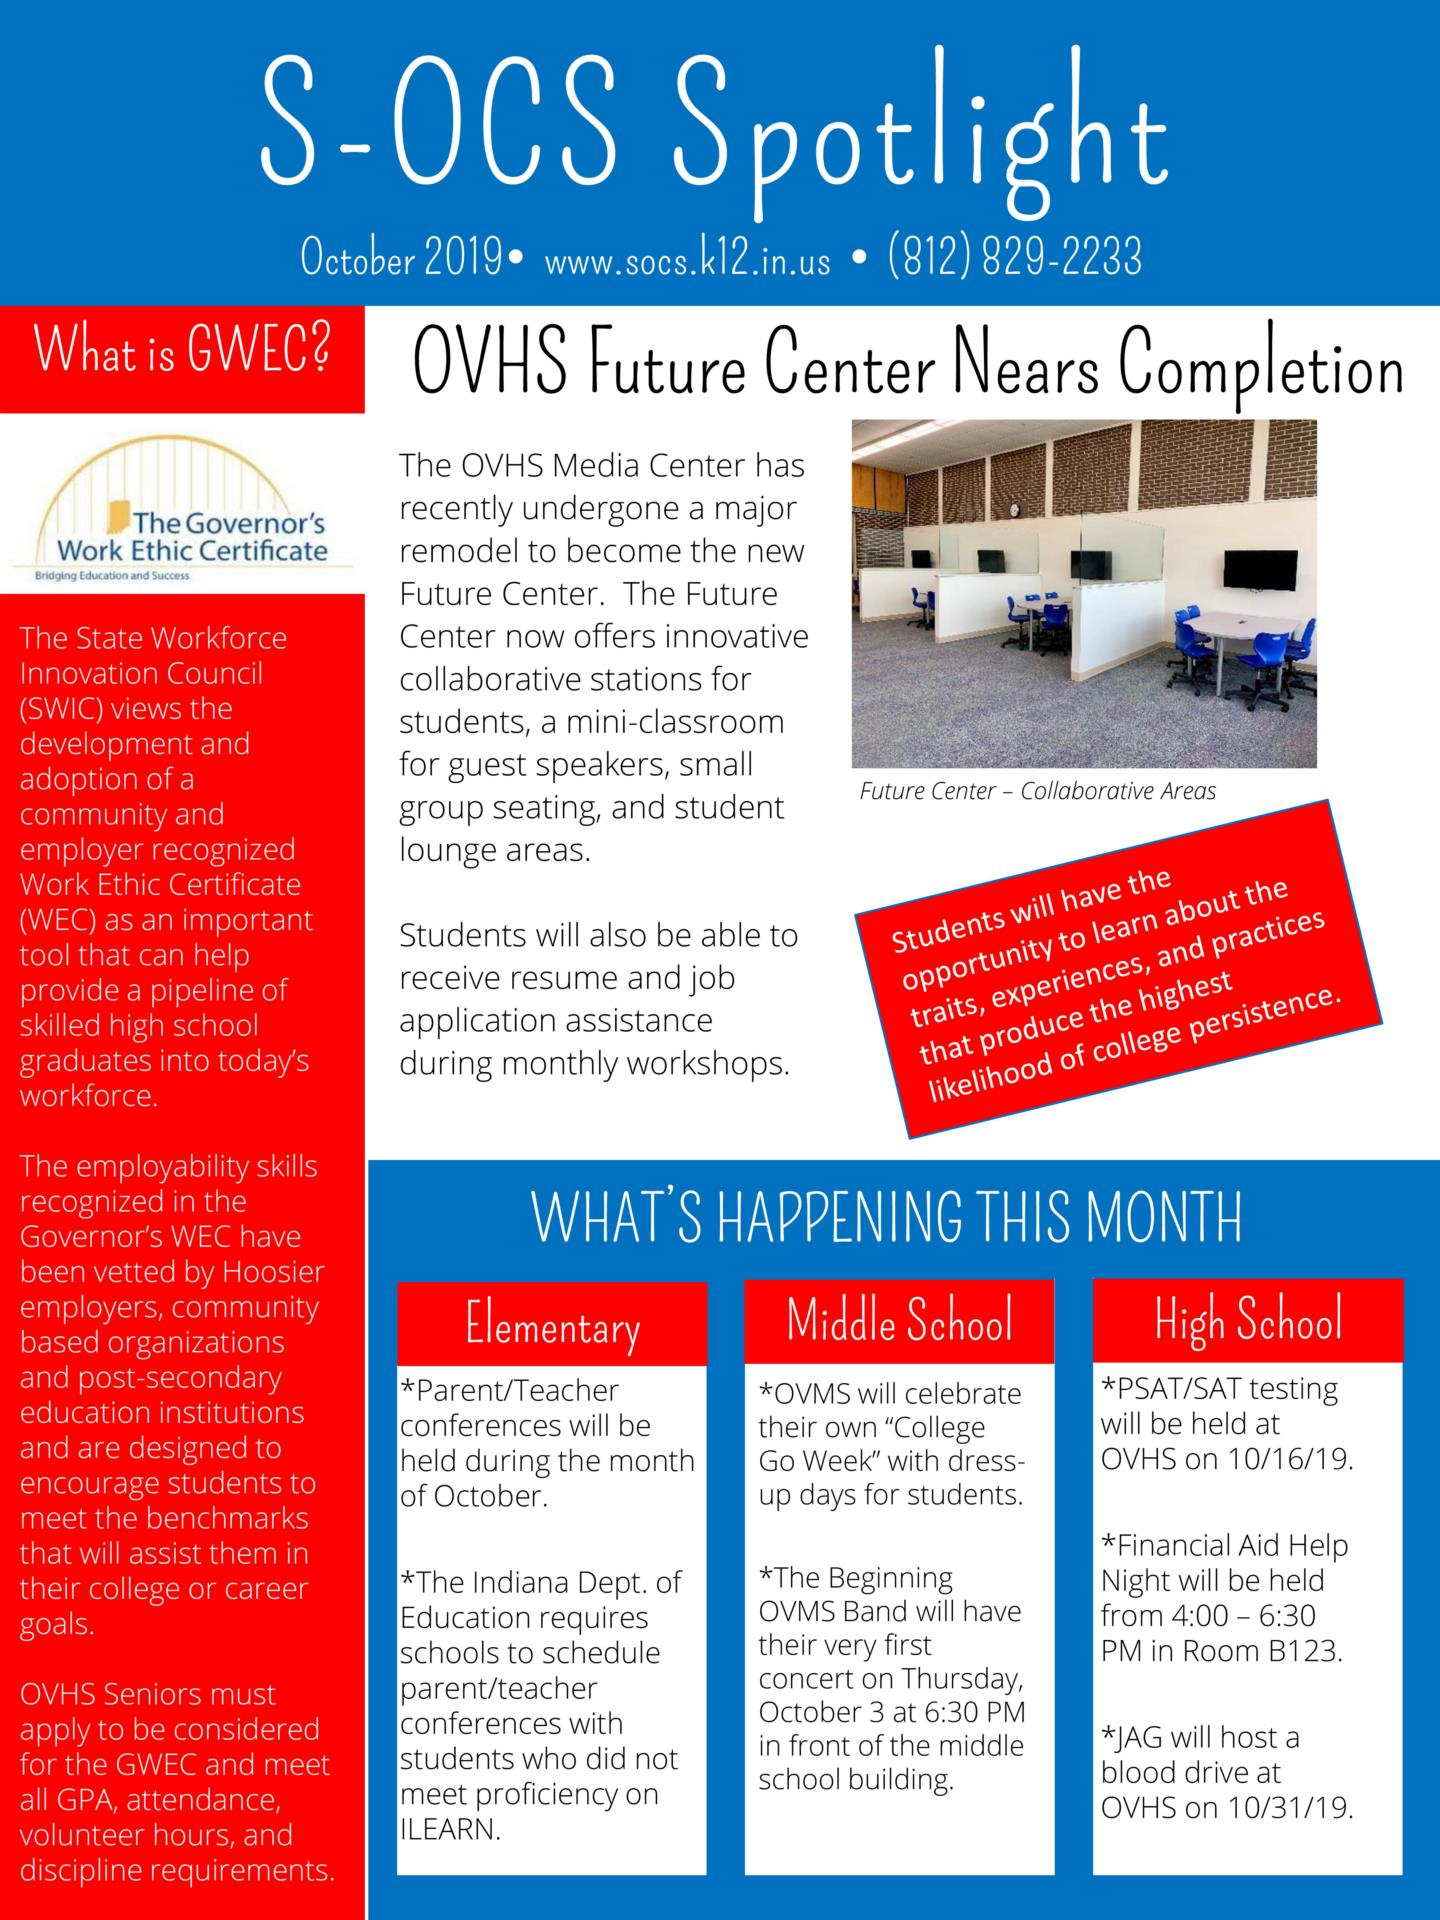 October news about schools